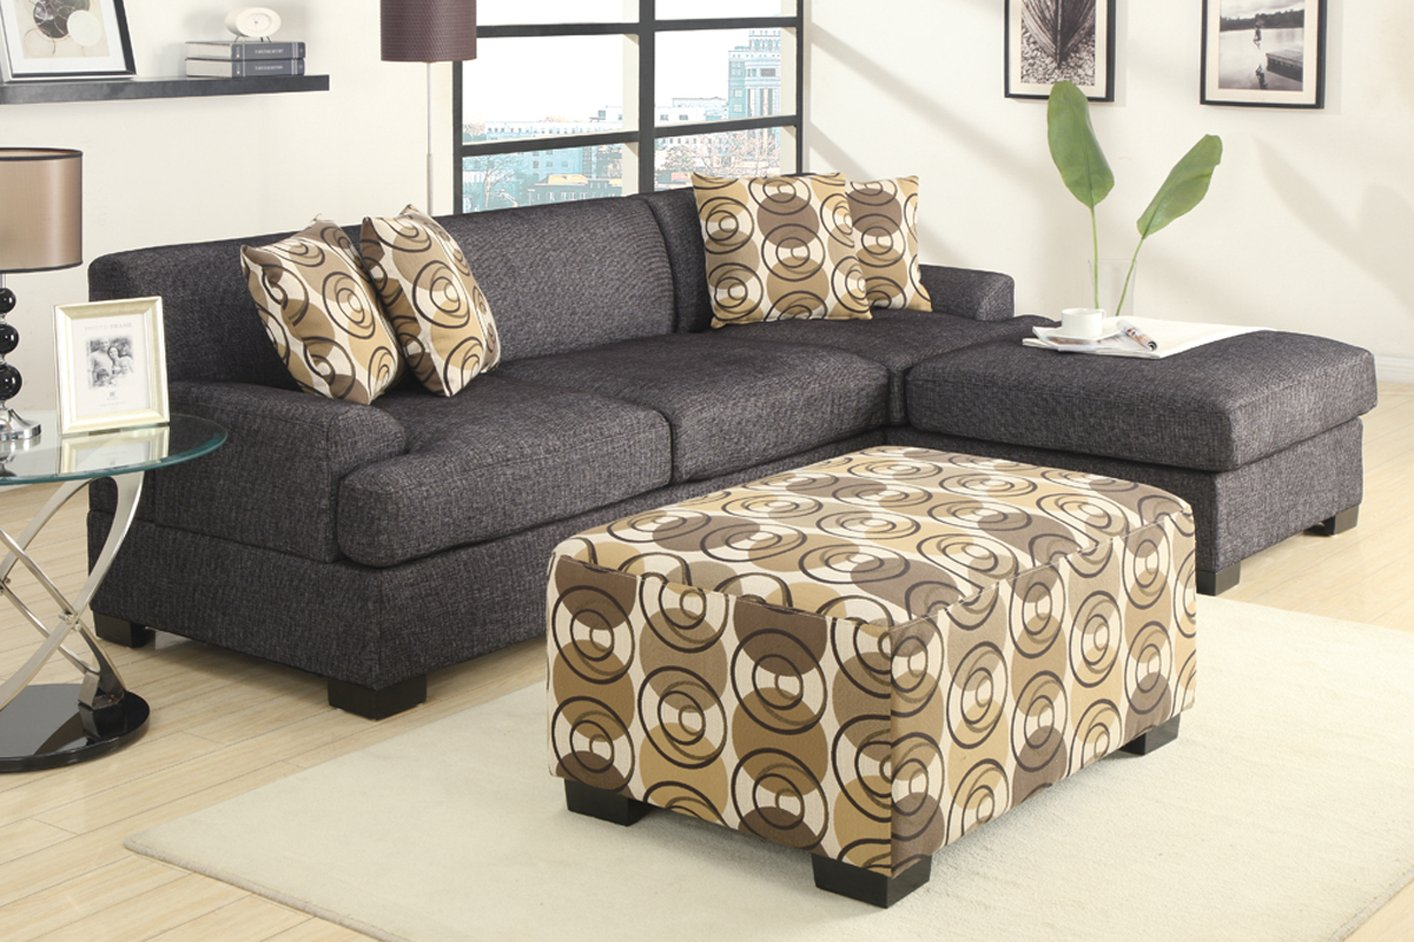 ... Grey Fabric Chaise Lounge ... : chaise sofa lounge - Sectionals, Sofas & Couches